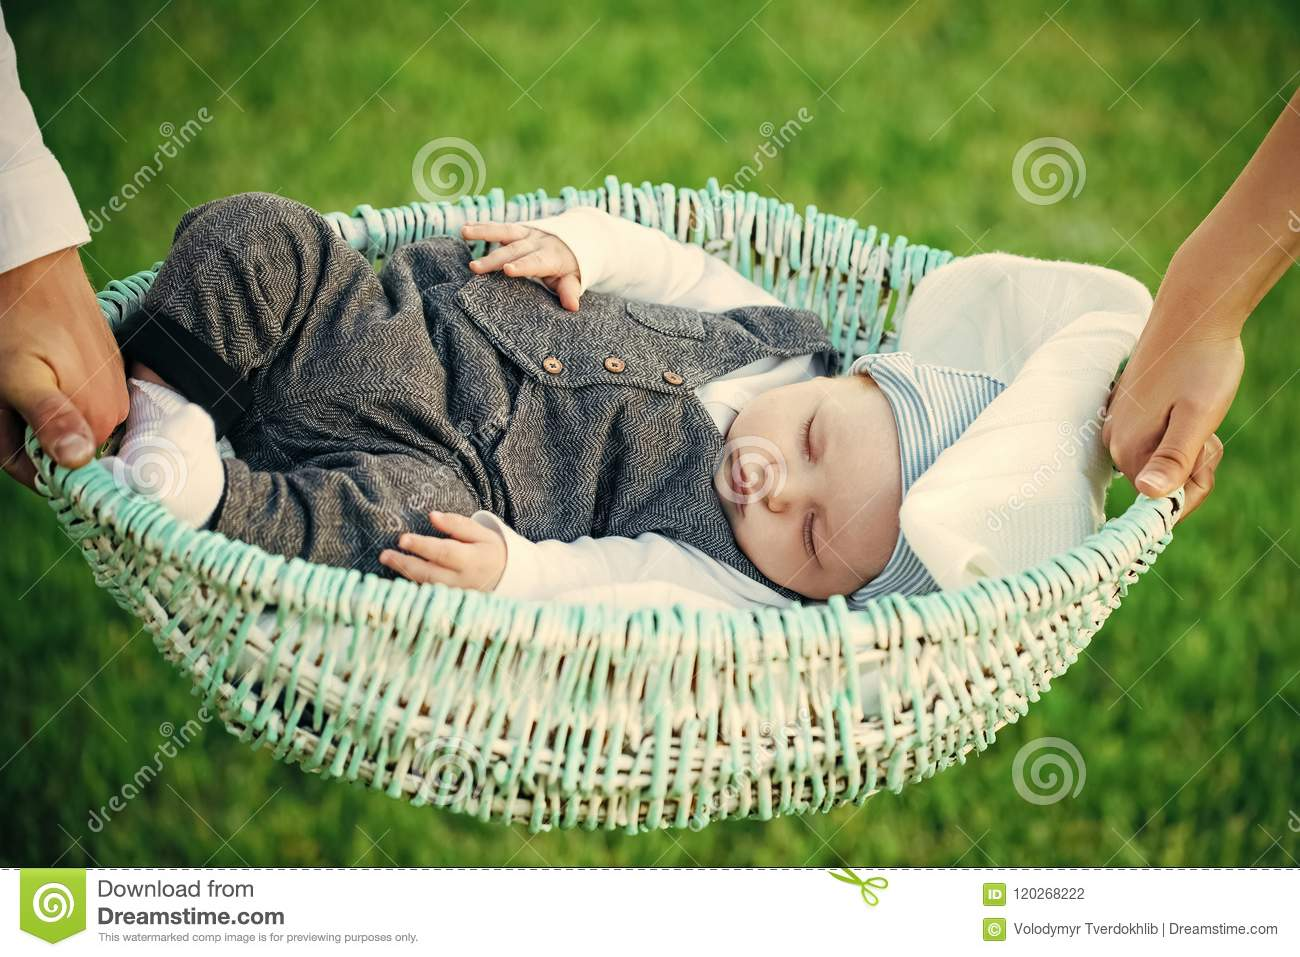 Download Baby Care. Baby Boy Sleep In Crib Held In Hands Stock Photo - Image of relax, little: 120268222